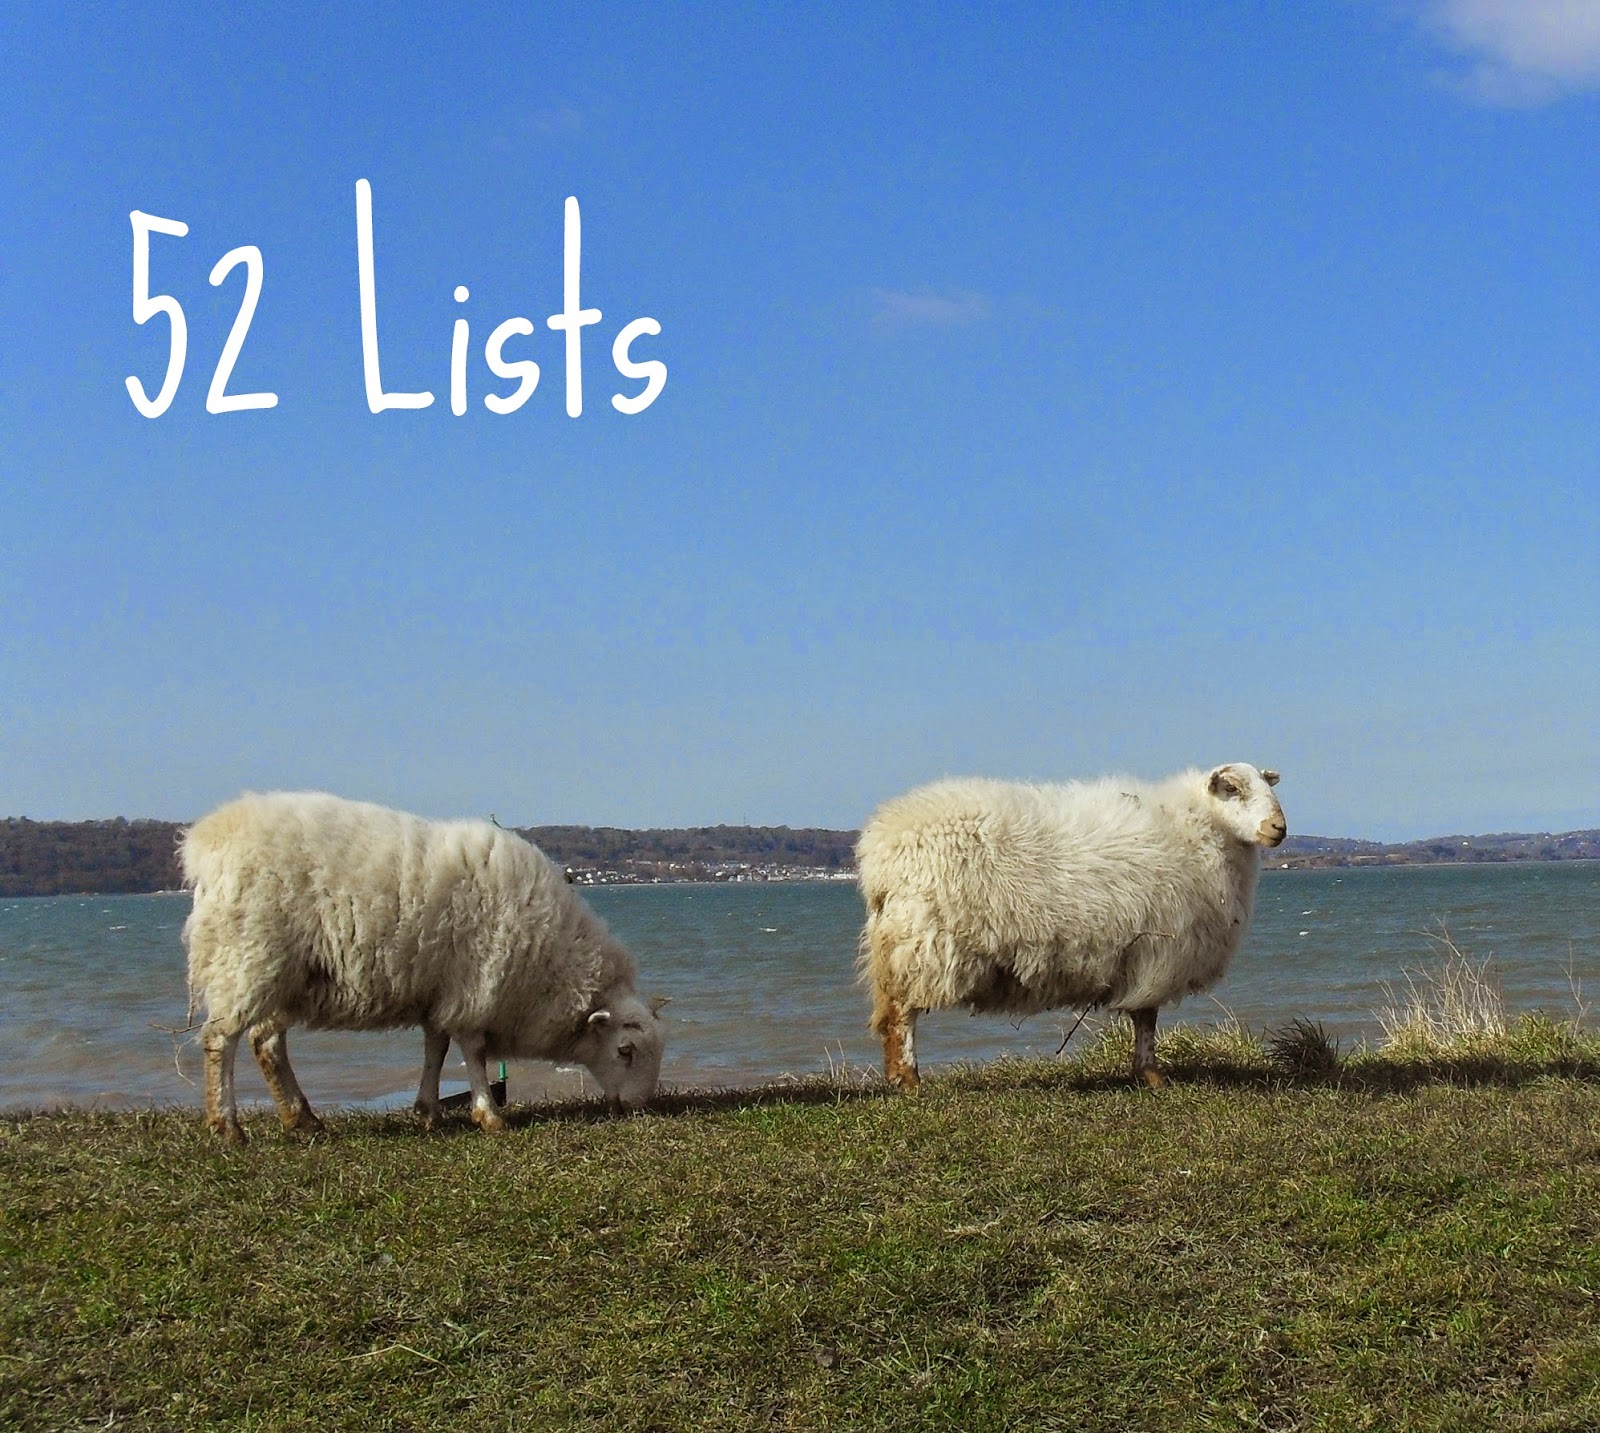 52 Lists - Your Pefect Weekend To-Do List